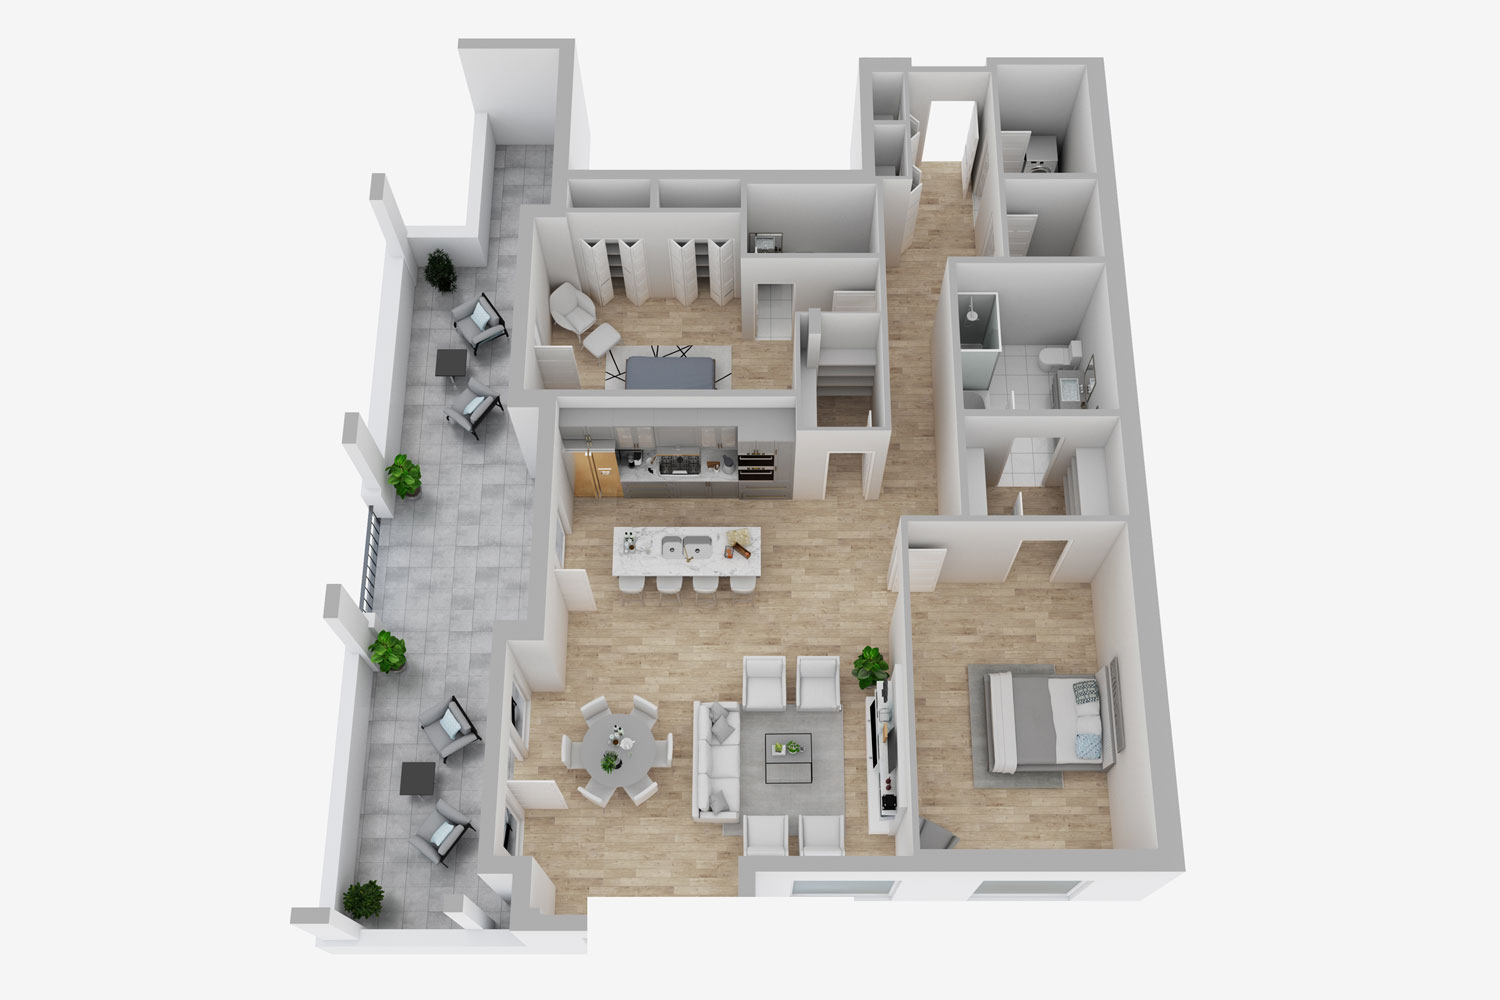 an interior 3x rendering of a real estate home for sale